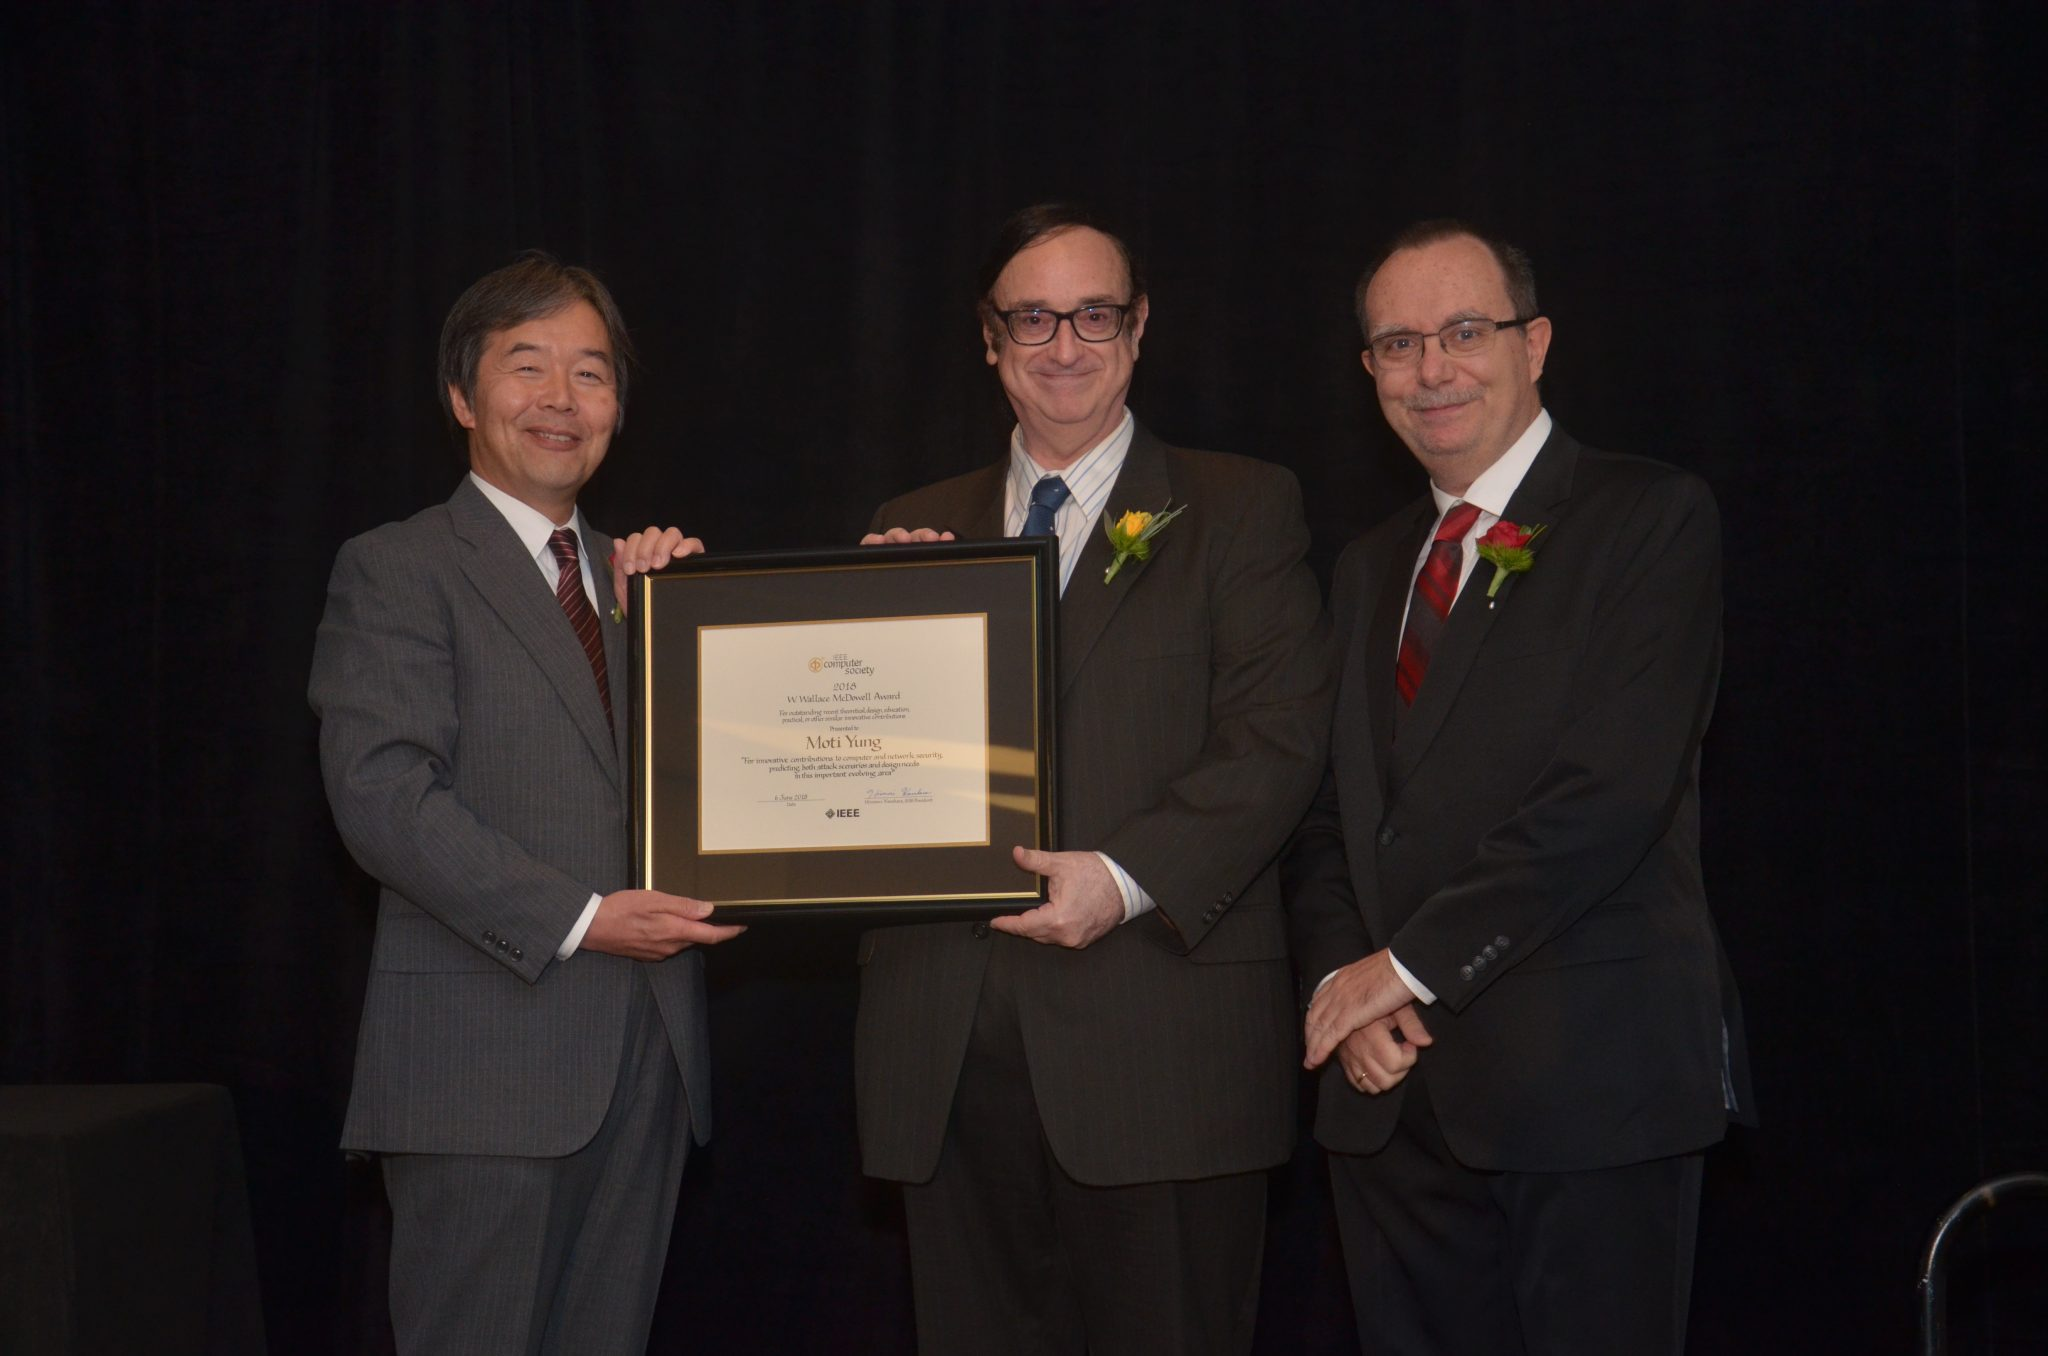 Dr. Moti Yung (center), fellow of IEEE and ACM, receives the IEEE Computer Society 2018 W. Wallace McDowell Award.